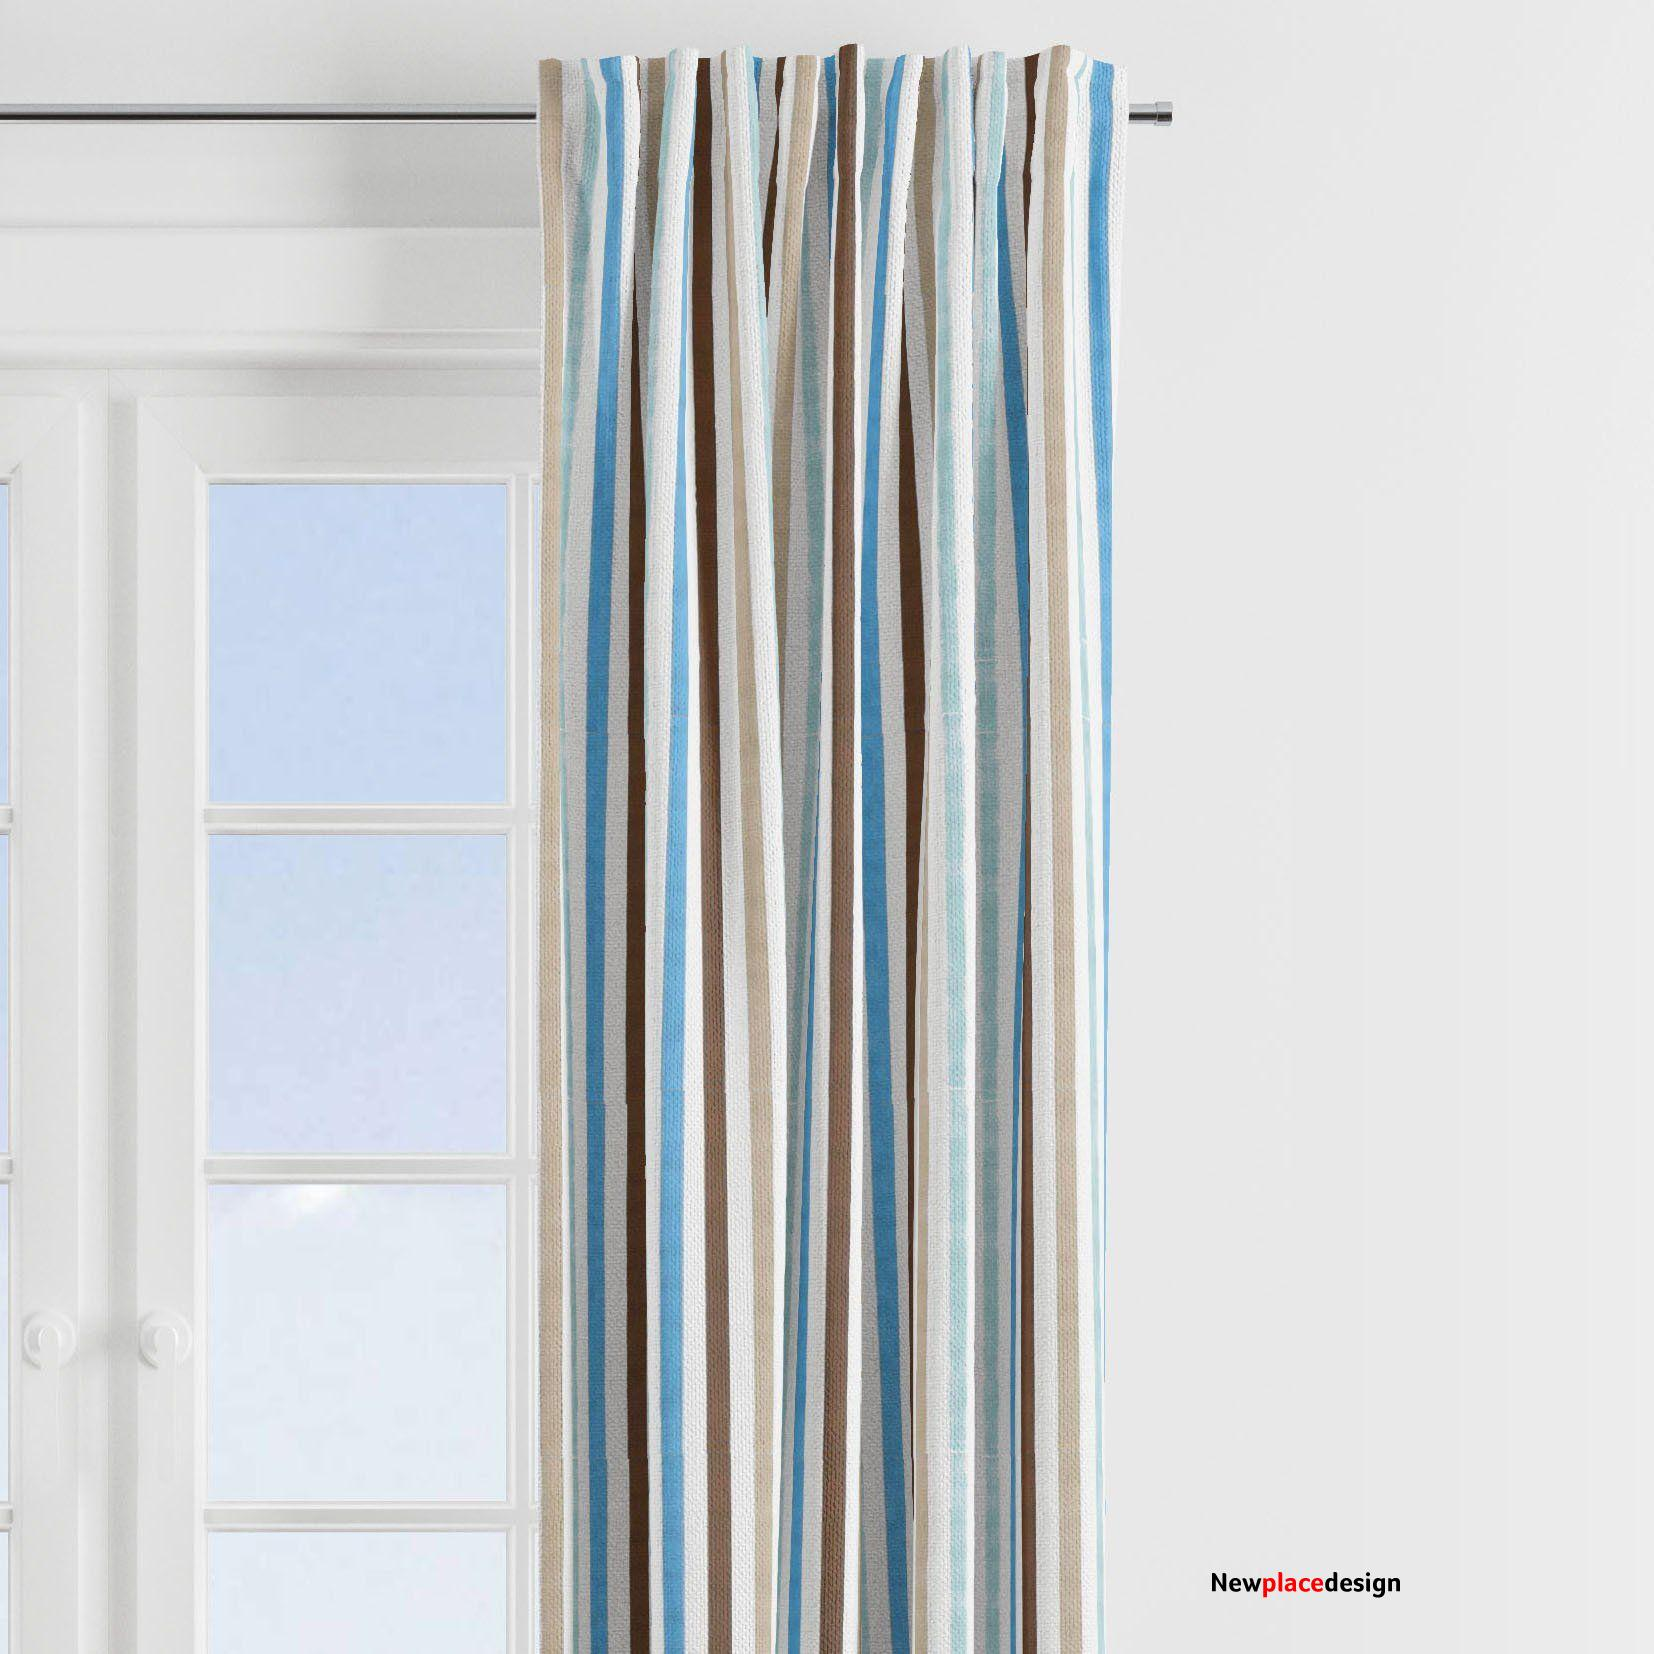 Bacati - Mod Diamonds Stripes, Aqua/Teal/Beige/Brown Window Treatments Curtain Panel/Valance Sold Individually (Multiple Prints to choose from) - Stripes Print